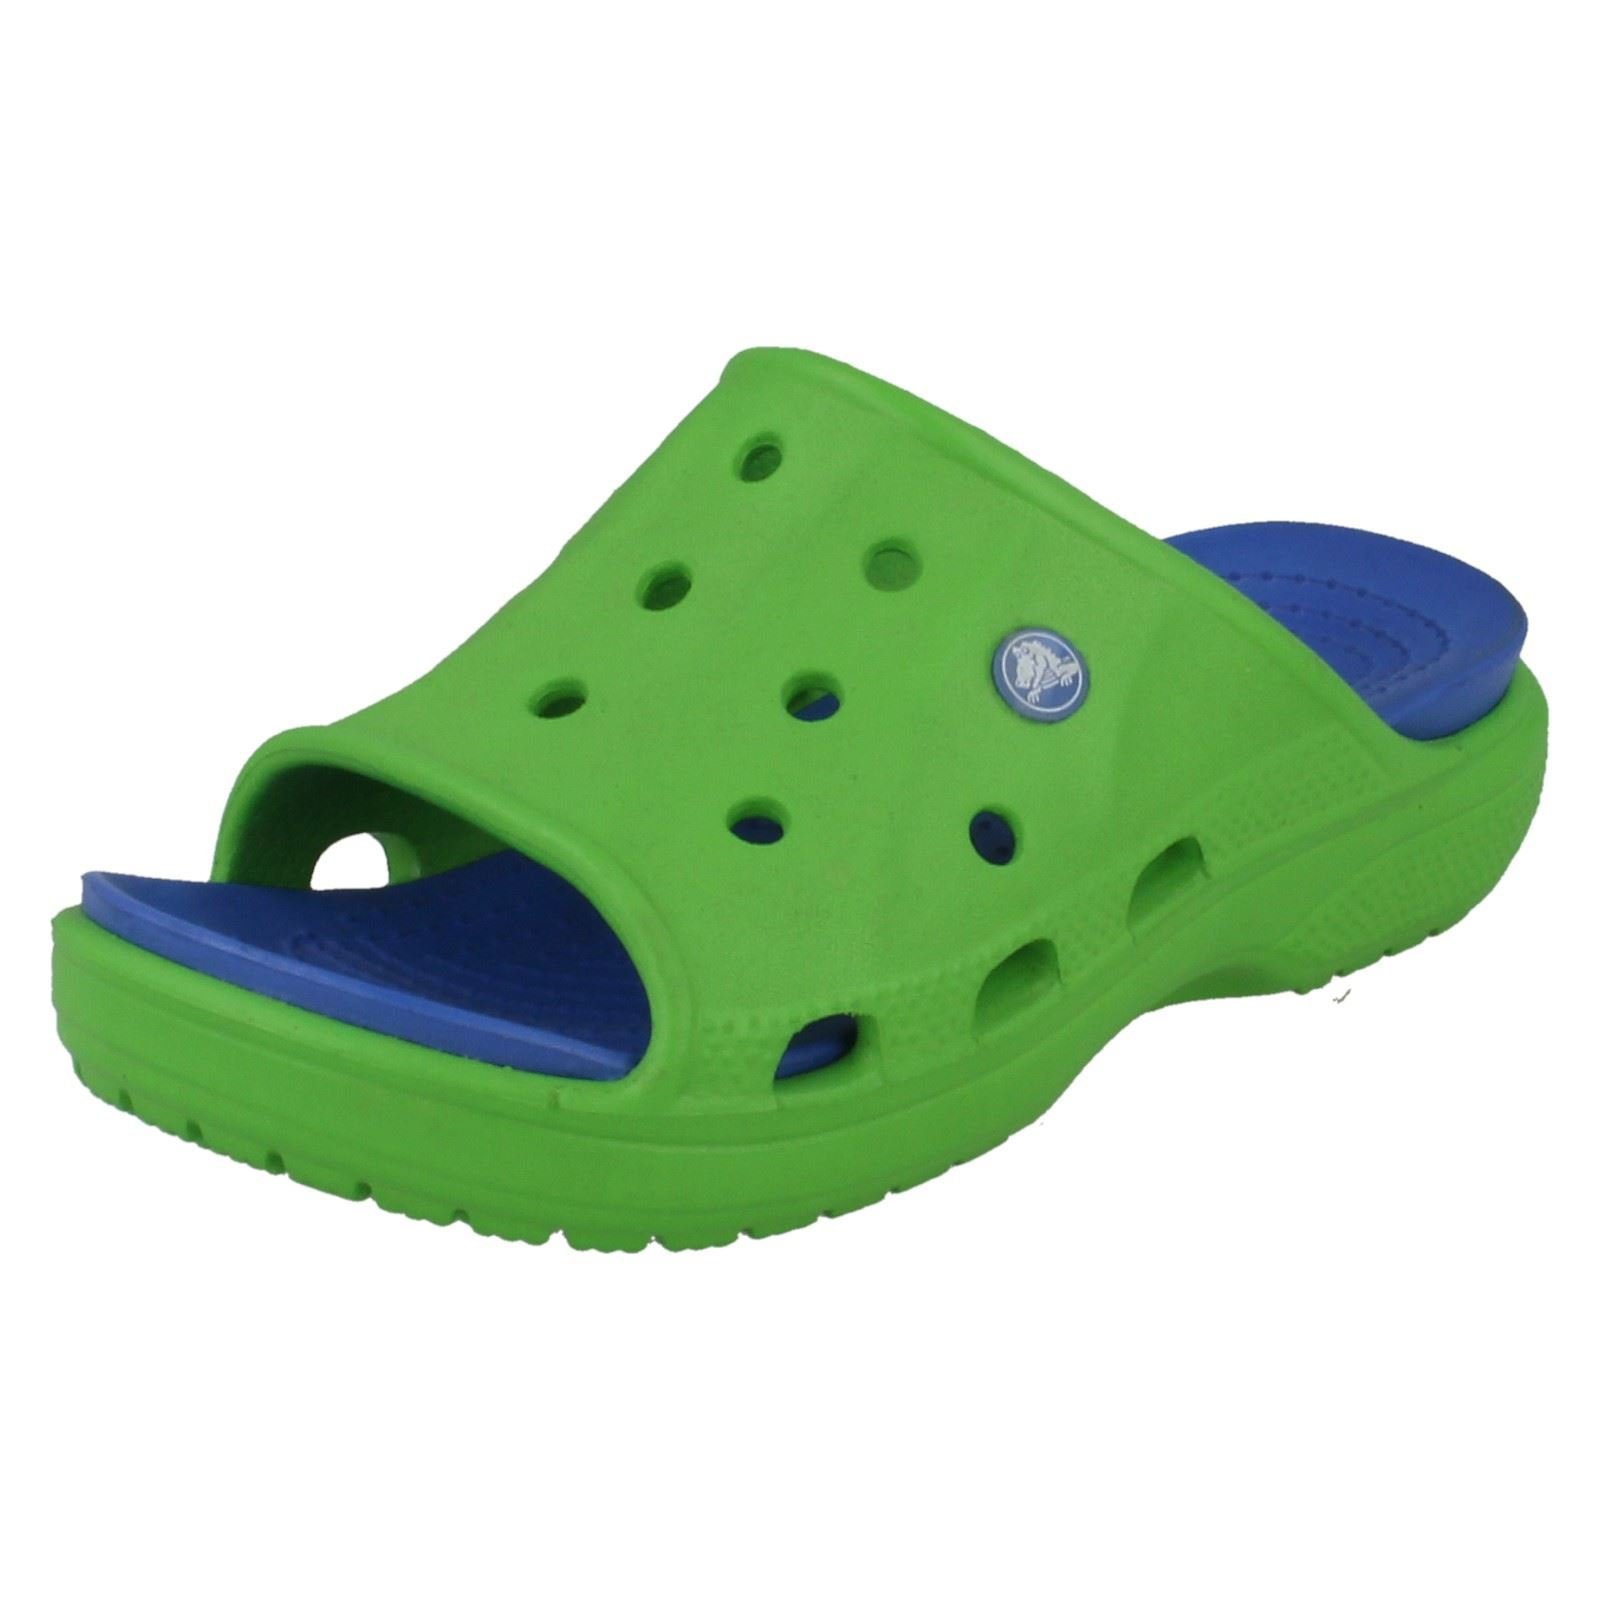 496eca8c3c628 Boys Crocs Feat Slide Kids Mule  Sandals